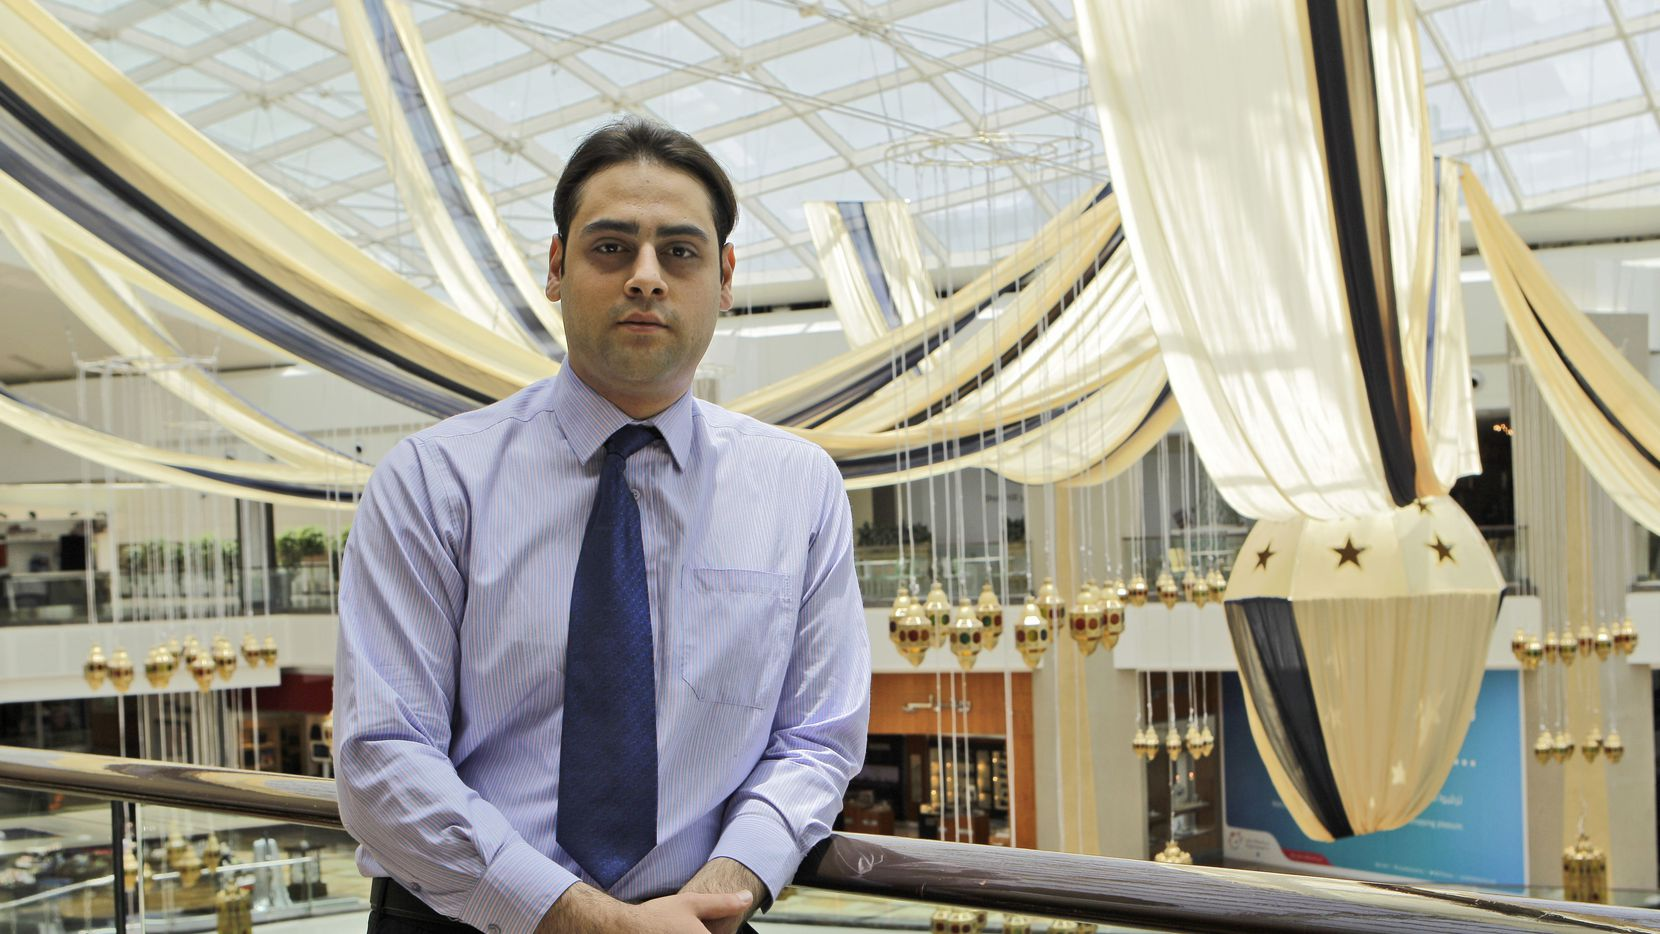 """Rafat Awad, a 23 year old pharmacist, poses for a portrait at a shopping mall in Dubai, United Arab Emirates on Wednesday, July 31, 2013. Describing his change of beliefs from Islam to atheism, """"It was the domino effect - you hit the first pin and it keeps on going and going,"""" said Awad, a Palestinian who grew up in the United Arab Emirates and lives there. """"I thought: It doesn't make sense anymore. I became a new person then."""" (AP Photo/Kamran Jebreili)"""